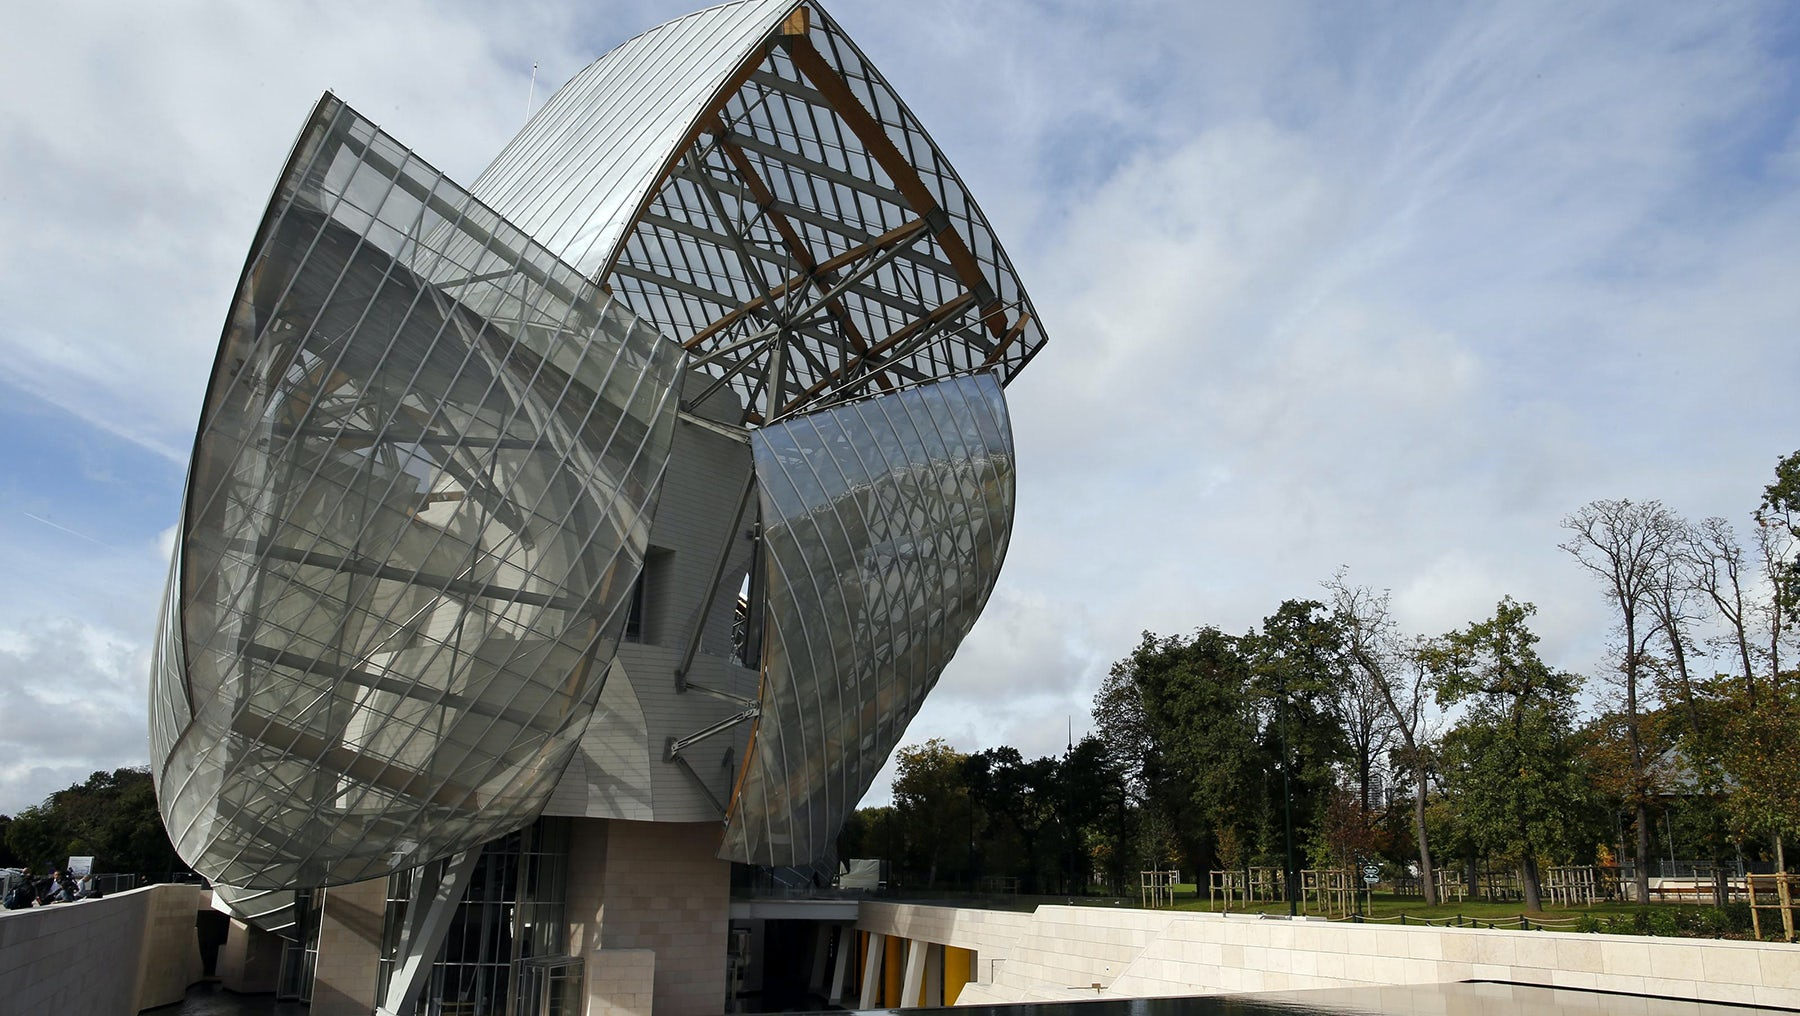 Fondation Louis Vuitton designed by architect Frank Gehry | Source: Reuters